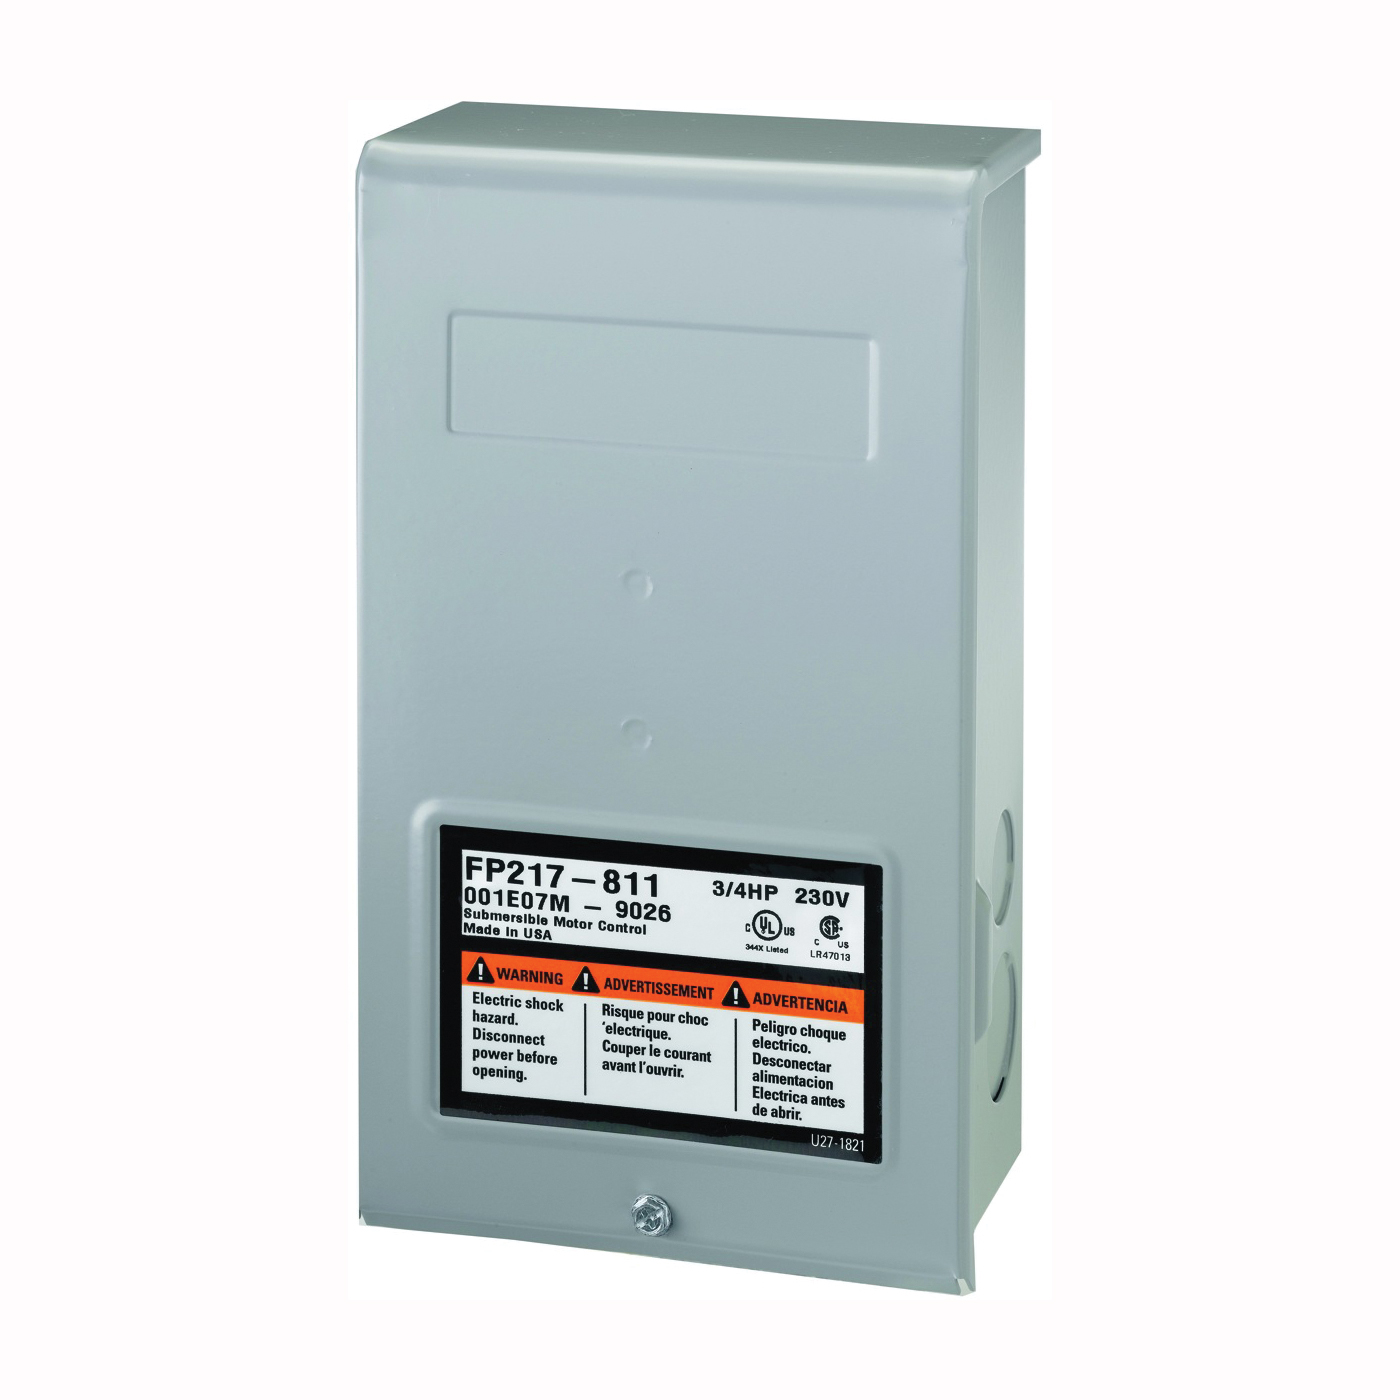 Picture of Flotec FP217-811 Control Box, 230 V, 0.75 hp, 3-Wire, Multiple Size Electrical Knockout, NEMA 3R Enclosure